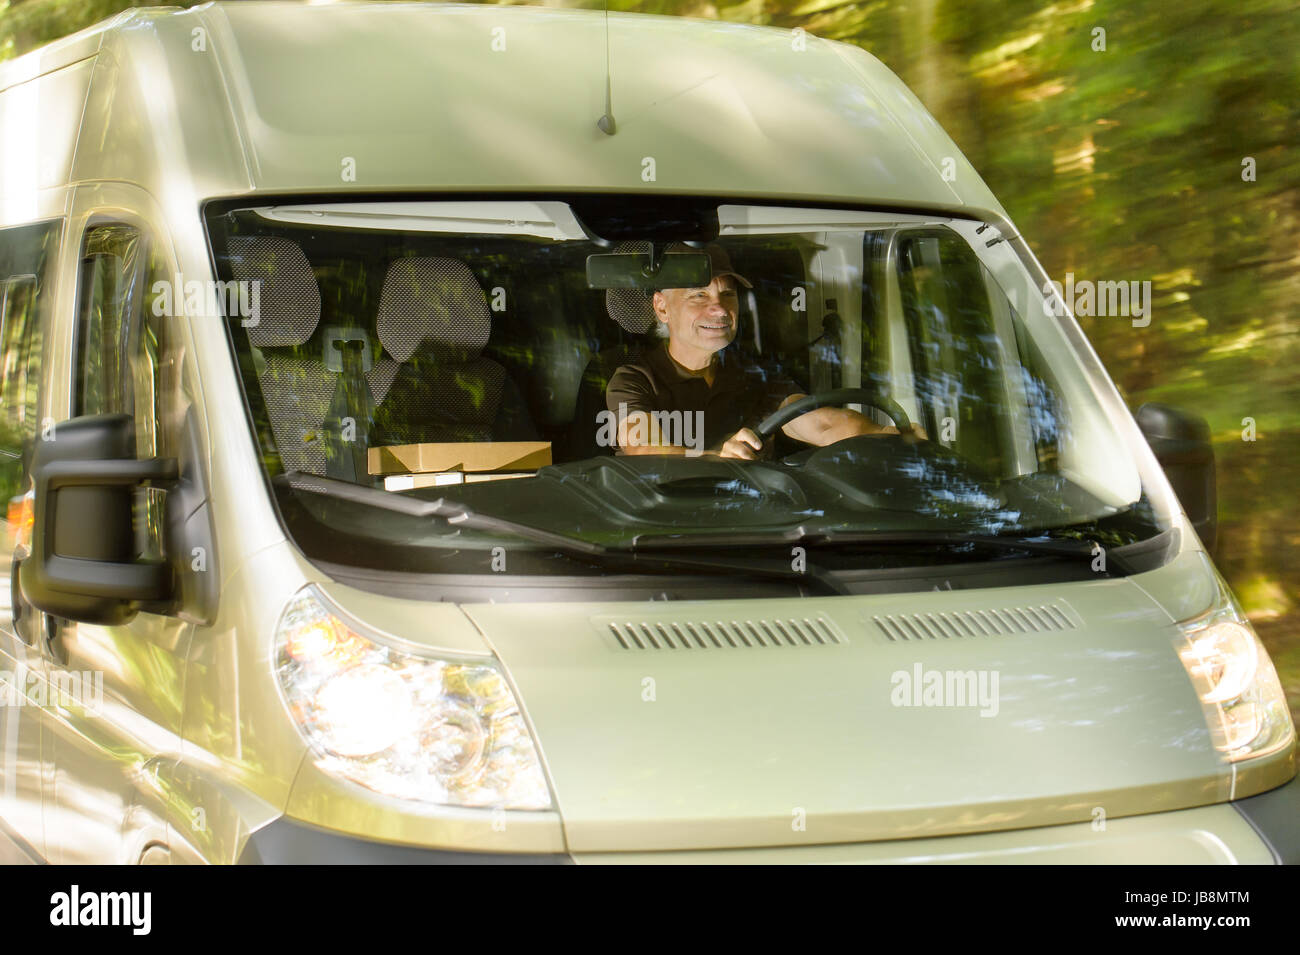 Postal delivery courier man driving cargo van delivering package - Stock Image